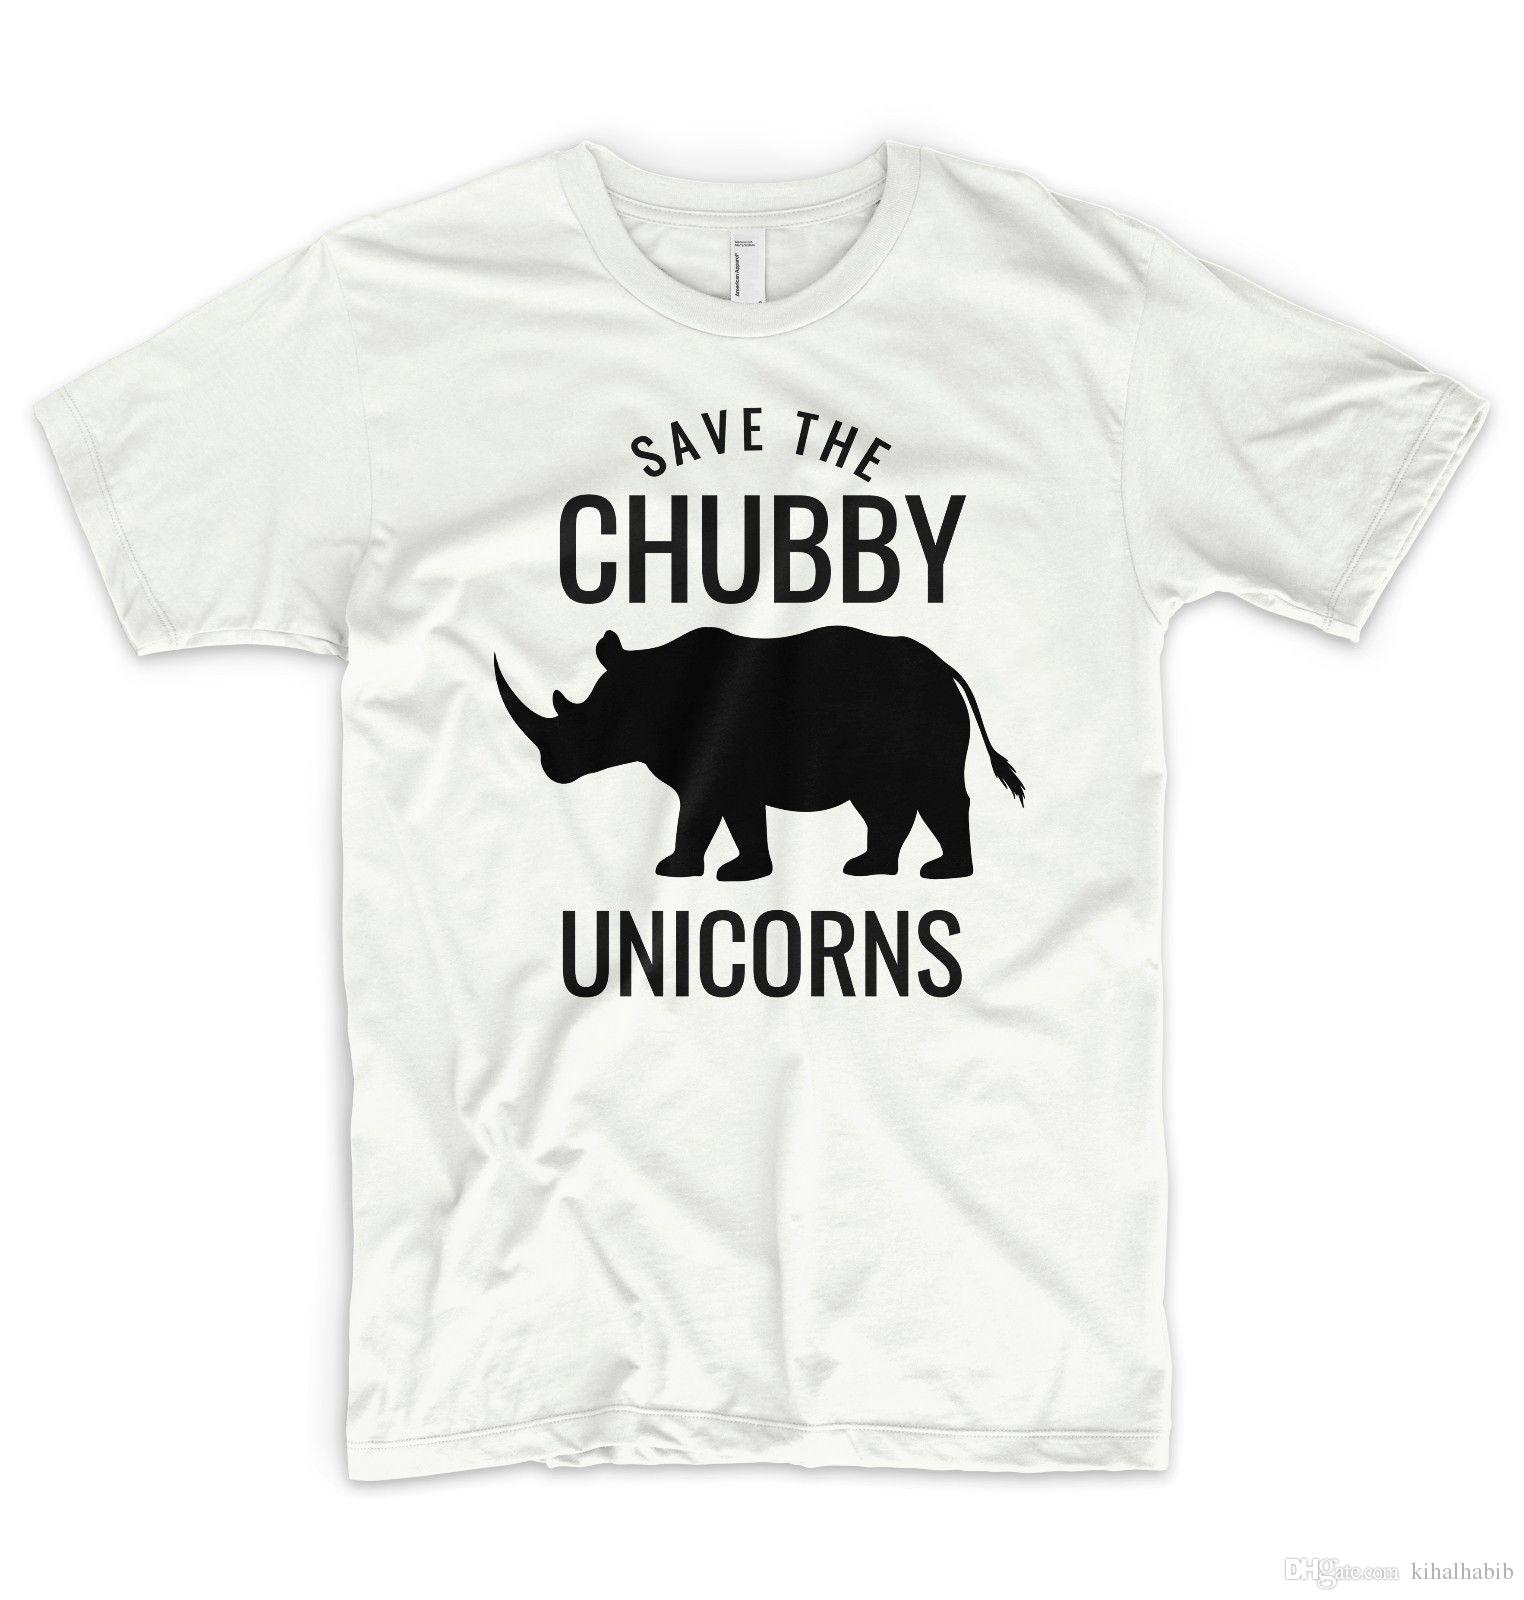 a186c676 Save The Chubby Unicorns T Shirt Novelty Rhino Funny Animals Are Friends  Vogue Design Your T Shirt Personalized T Shirt From Kihalhabib, $10.85|  DHgate.Com